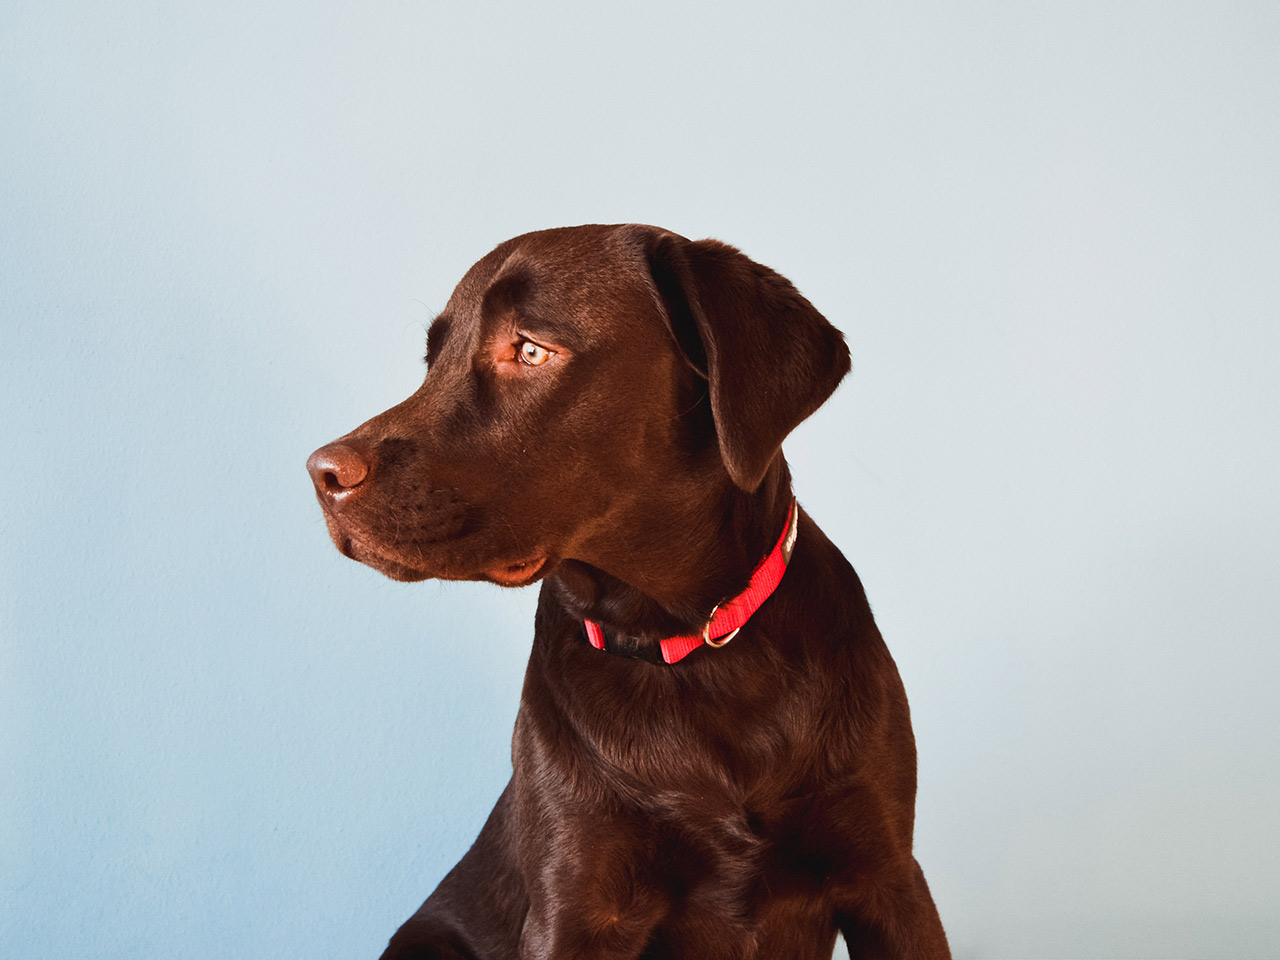 A brown dog with red collar